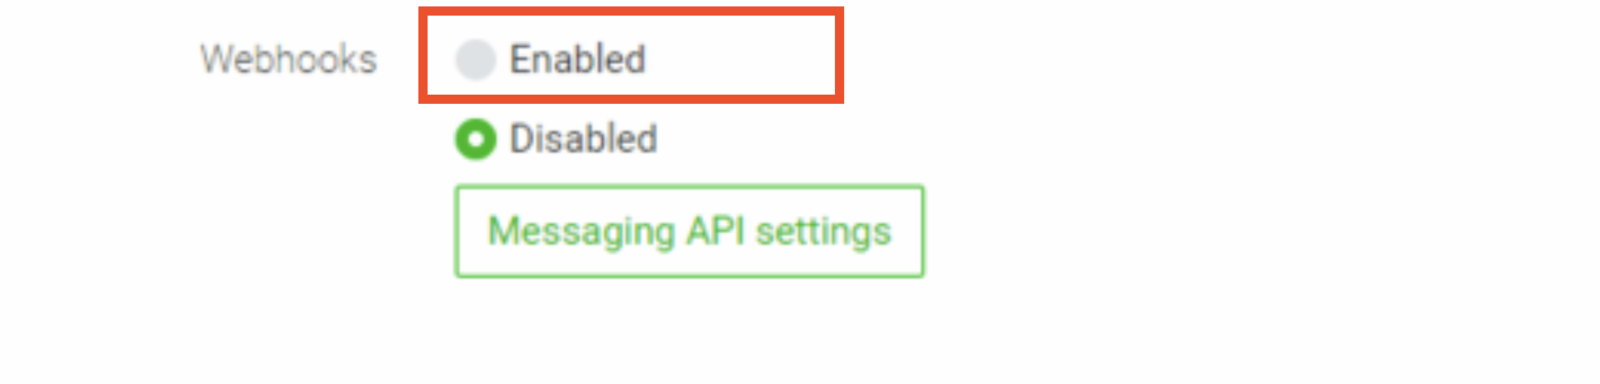 Also, make sure Webhooks are enabled